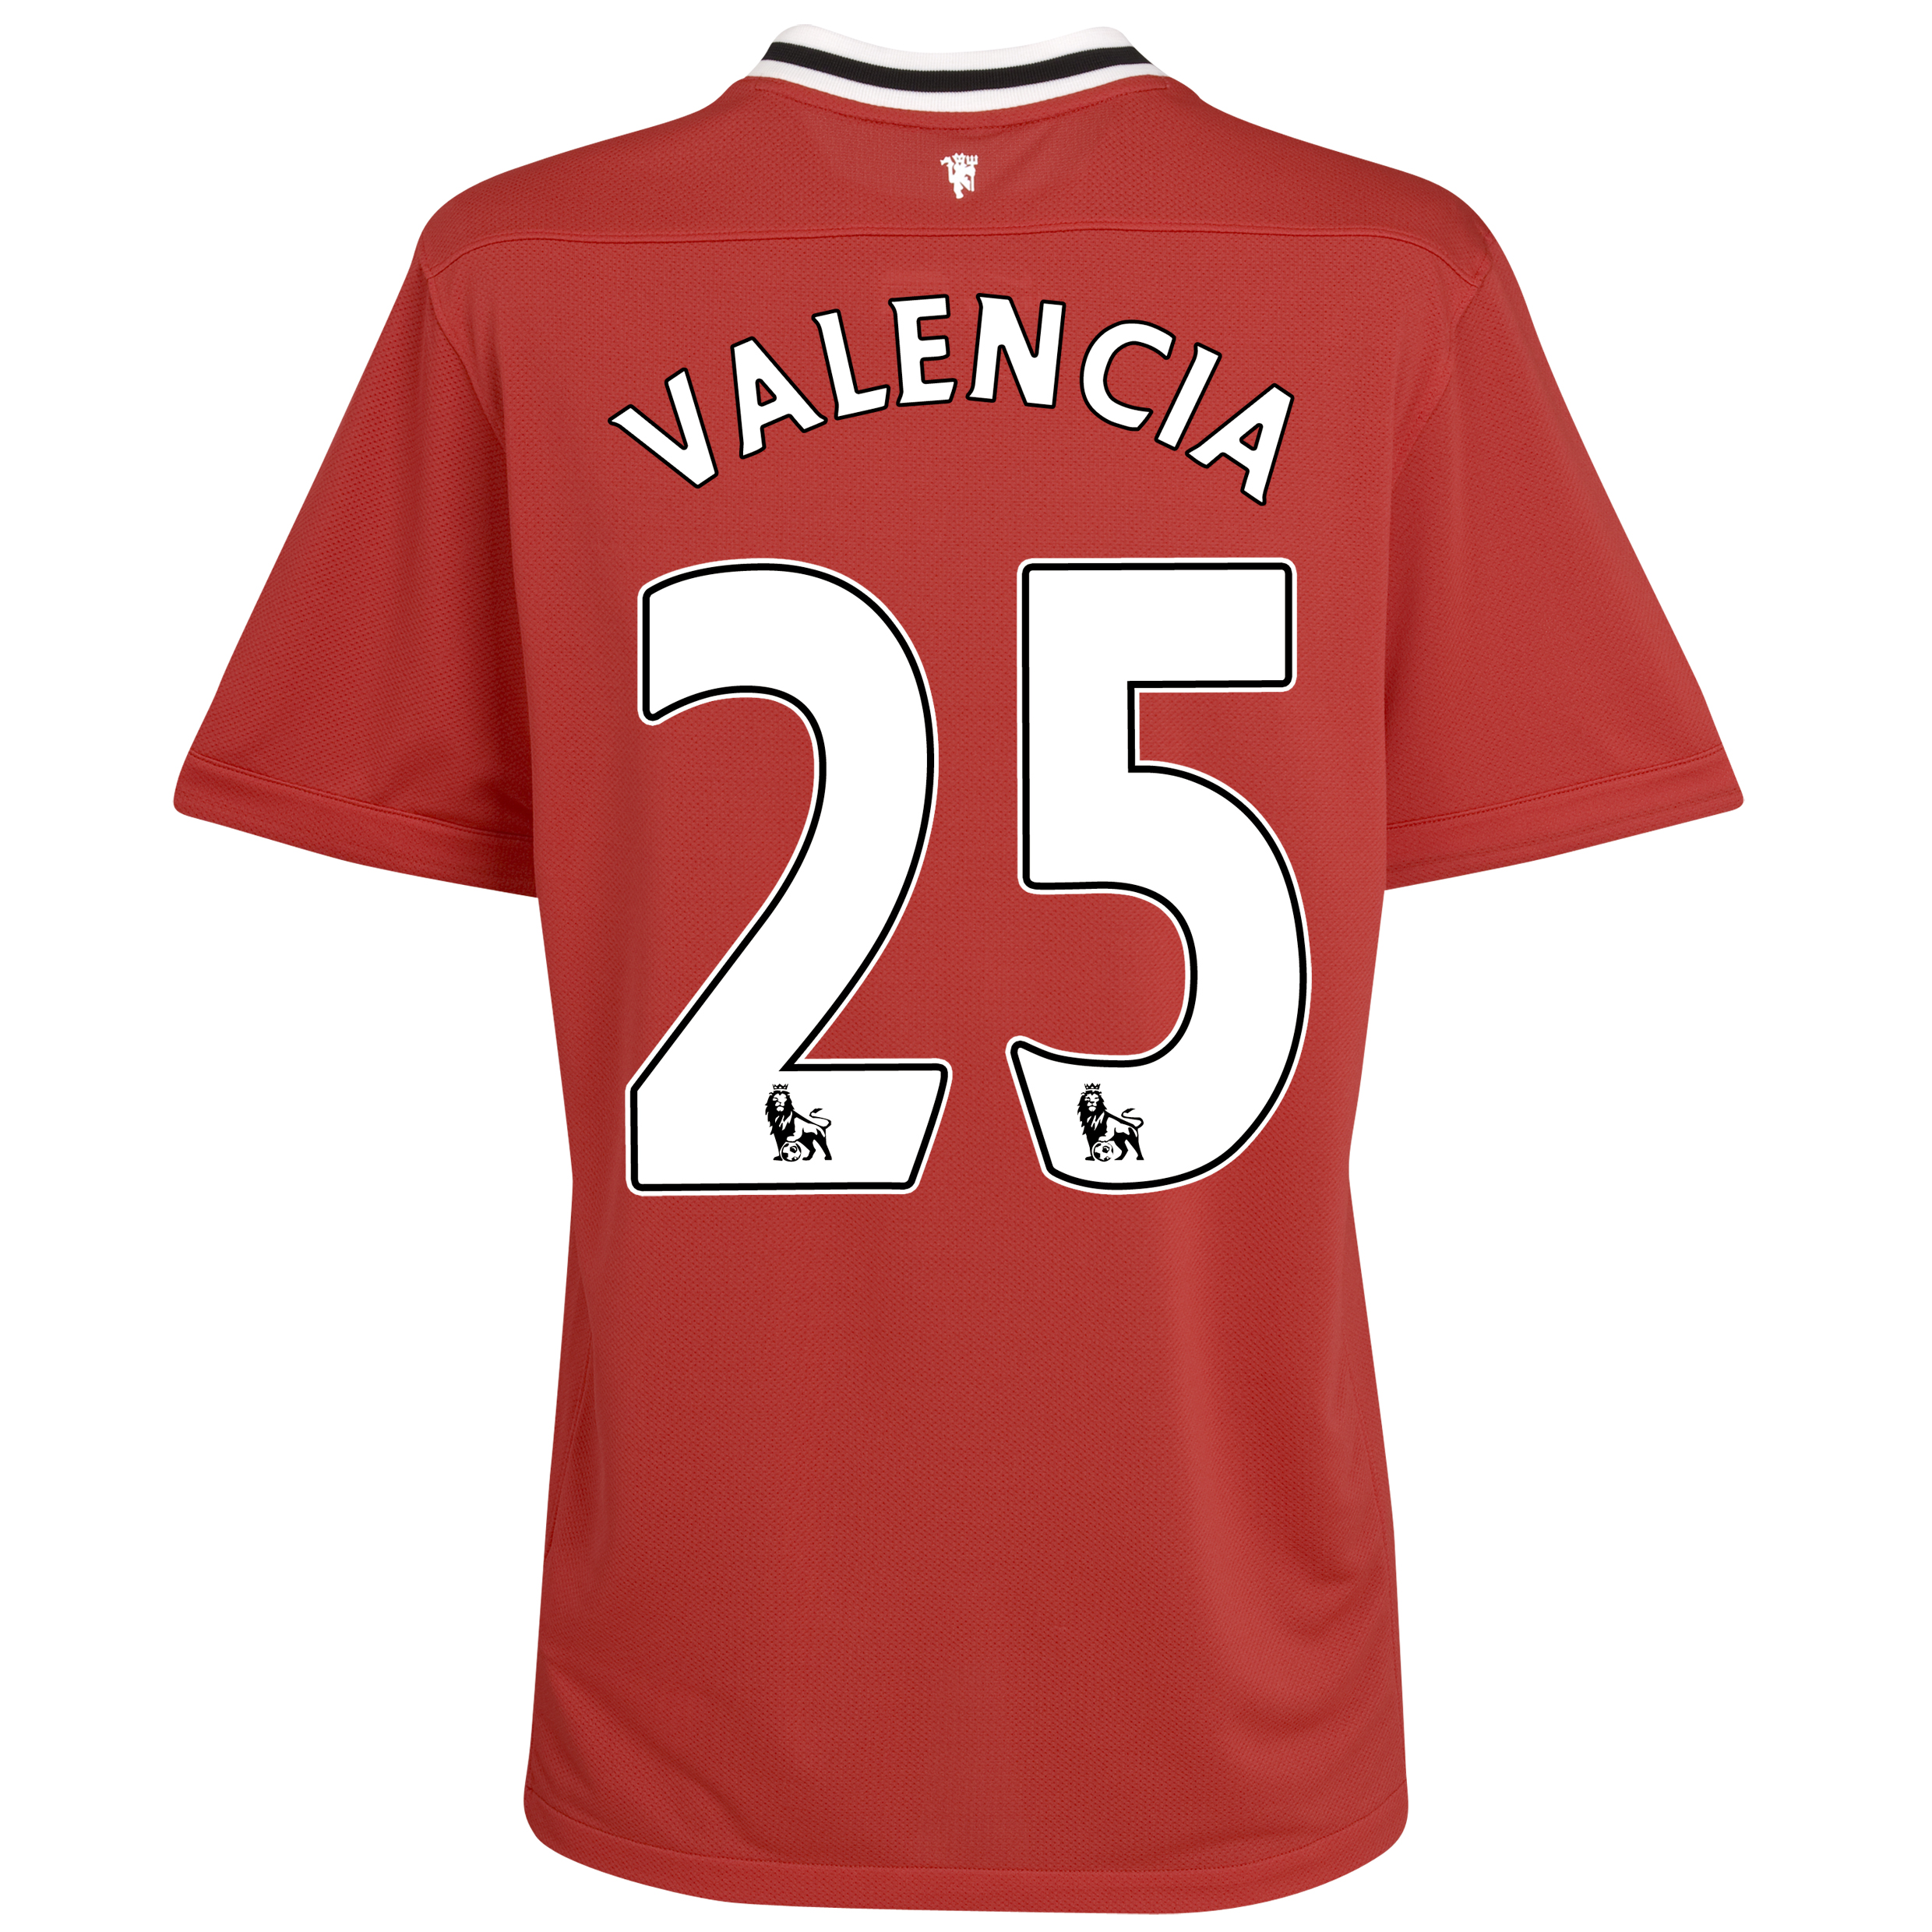 Manchester United Home Shirt 2011/12 with Valencia 25 printing